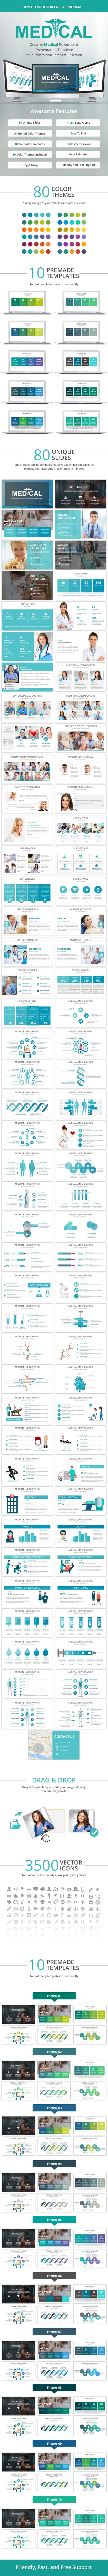 Medical powerpoint presentation template creative powerpoint medical powerpoint presentation template creative powerpoint templates powerpoint presentation templates pinterest toneelgroepblik Choice Image